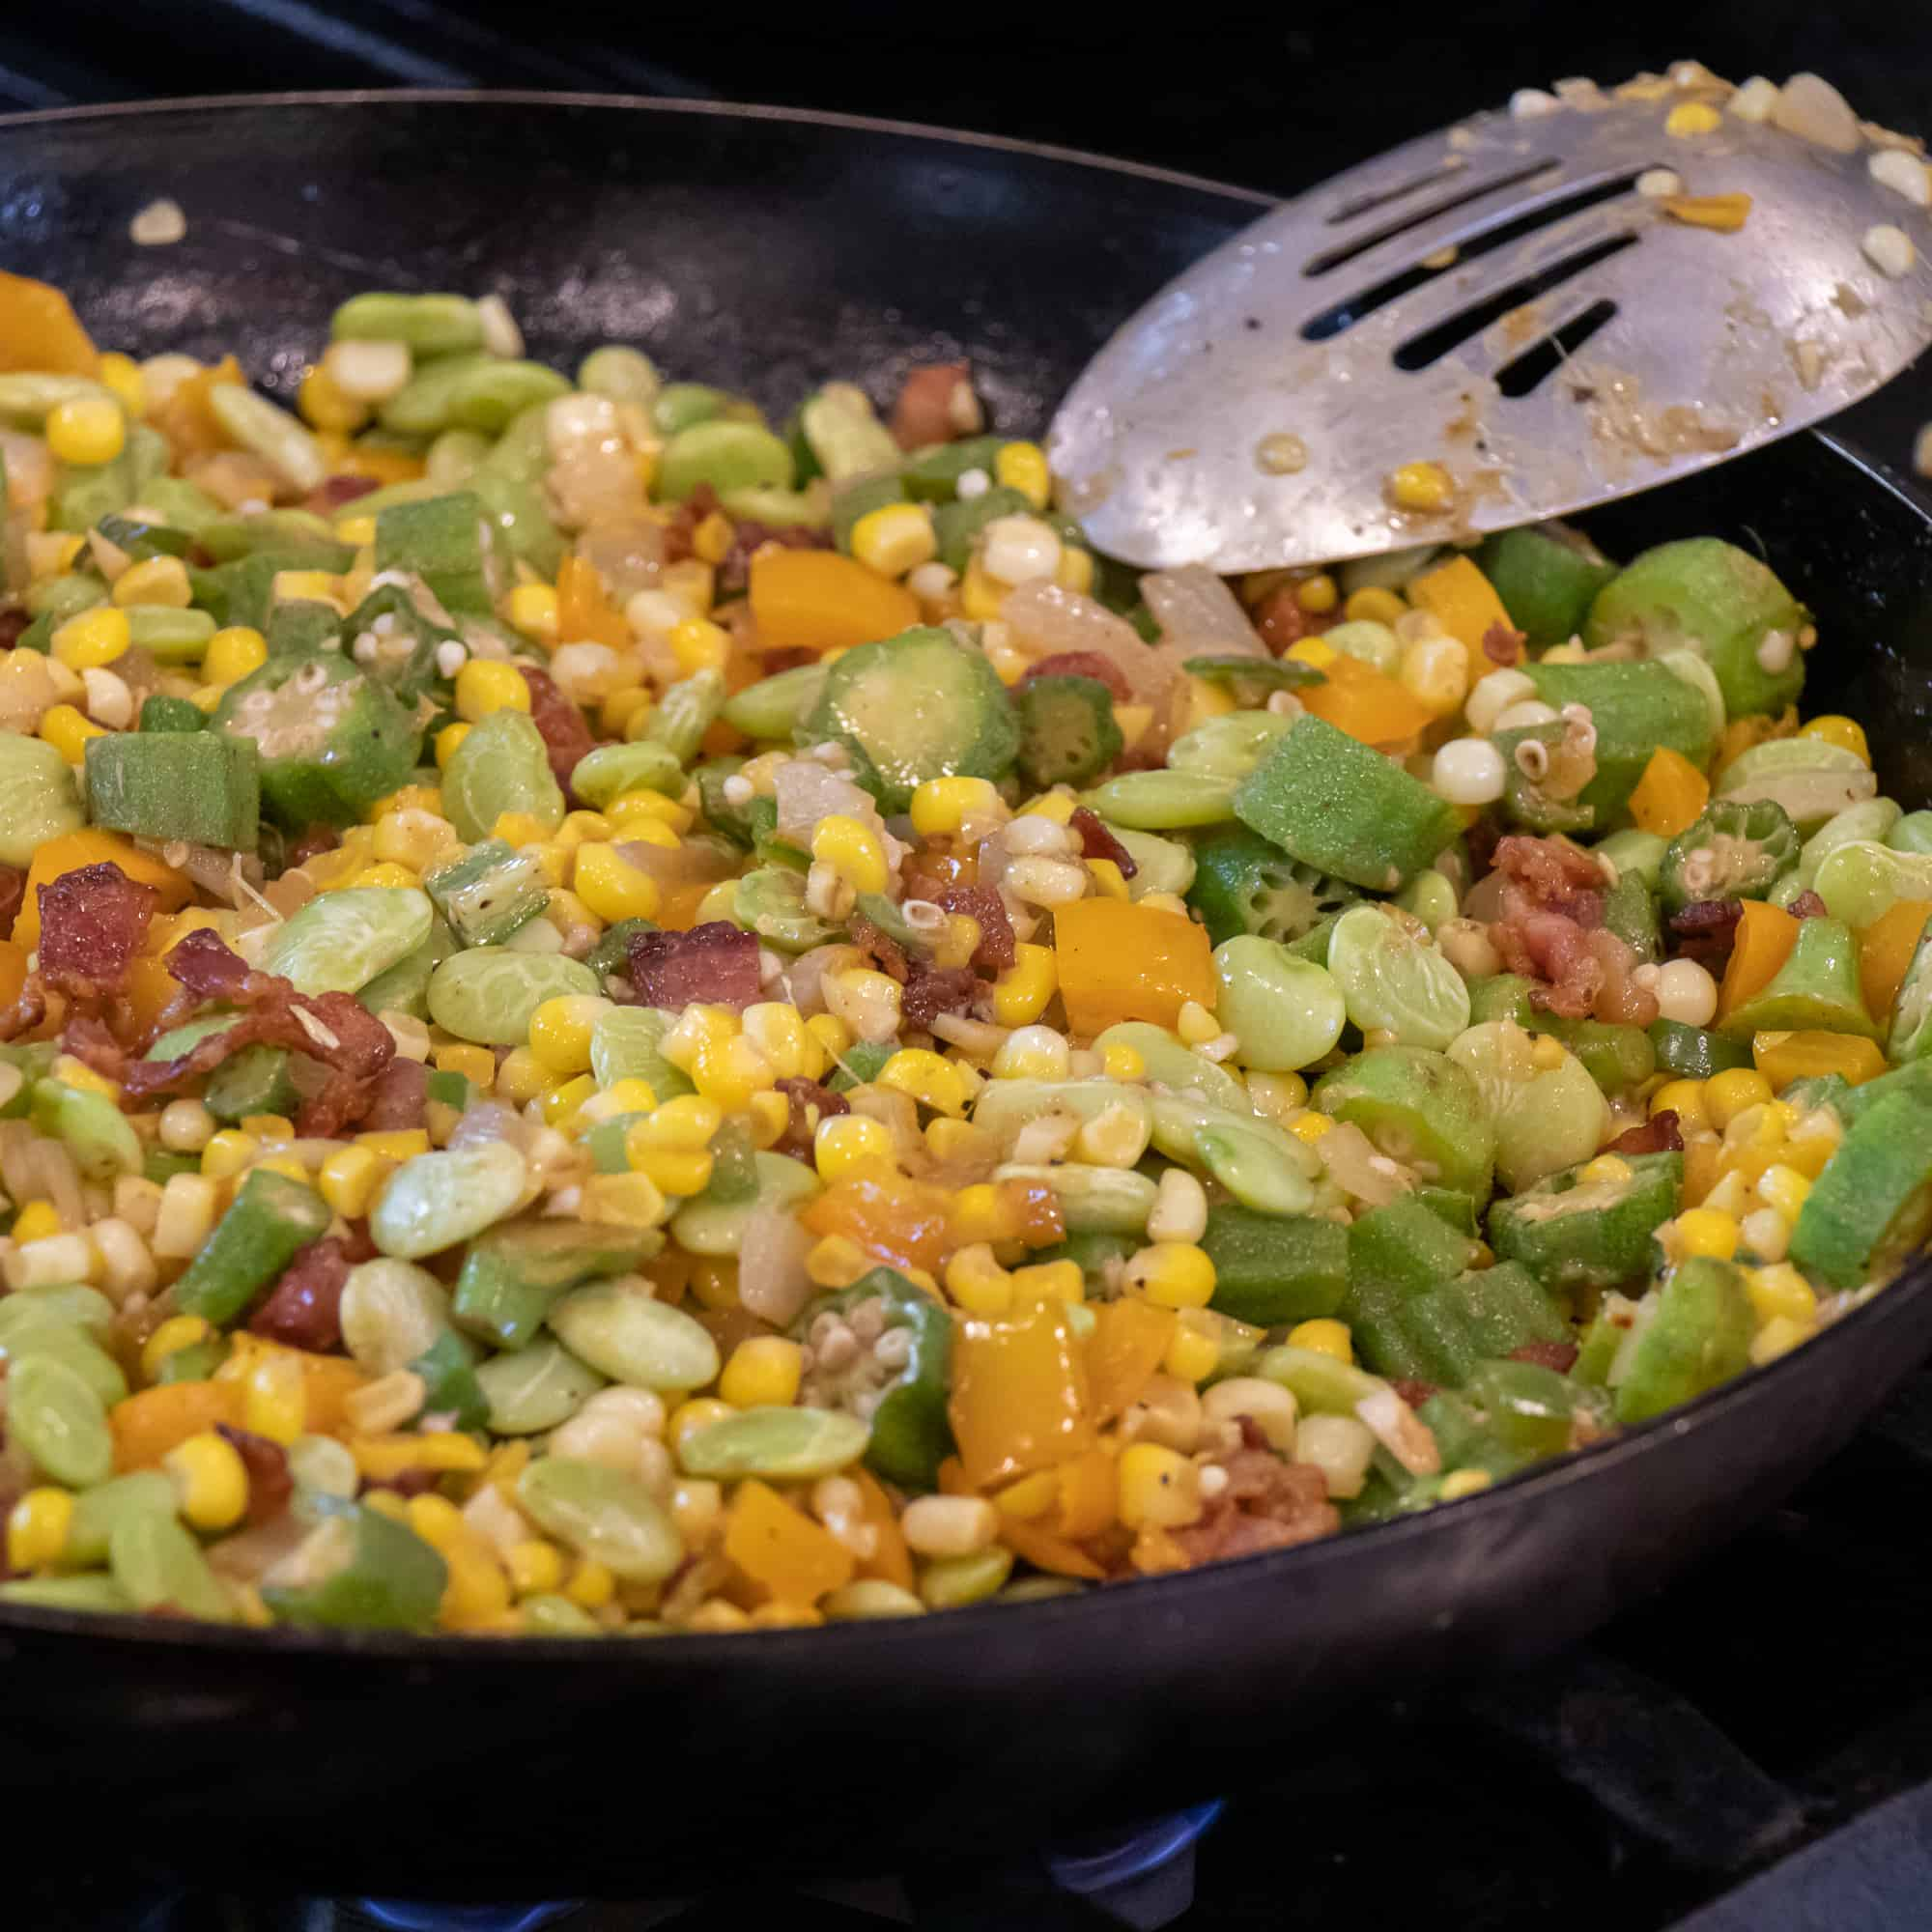 Easy skillet recipe for how to make succotash with lima beans, bacon, corn, okra, grape tomatoes. Classic southern side dish comfort food.